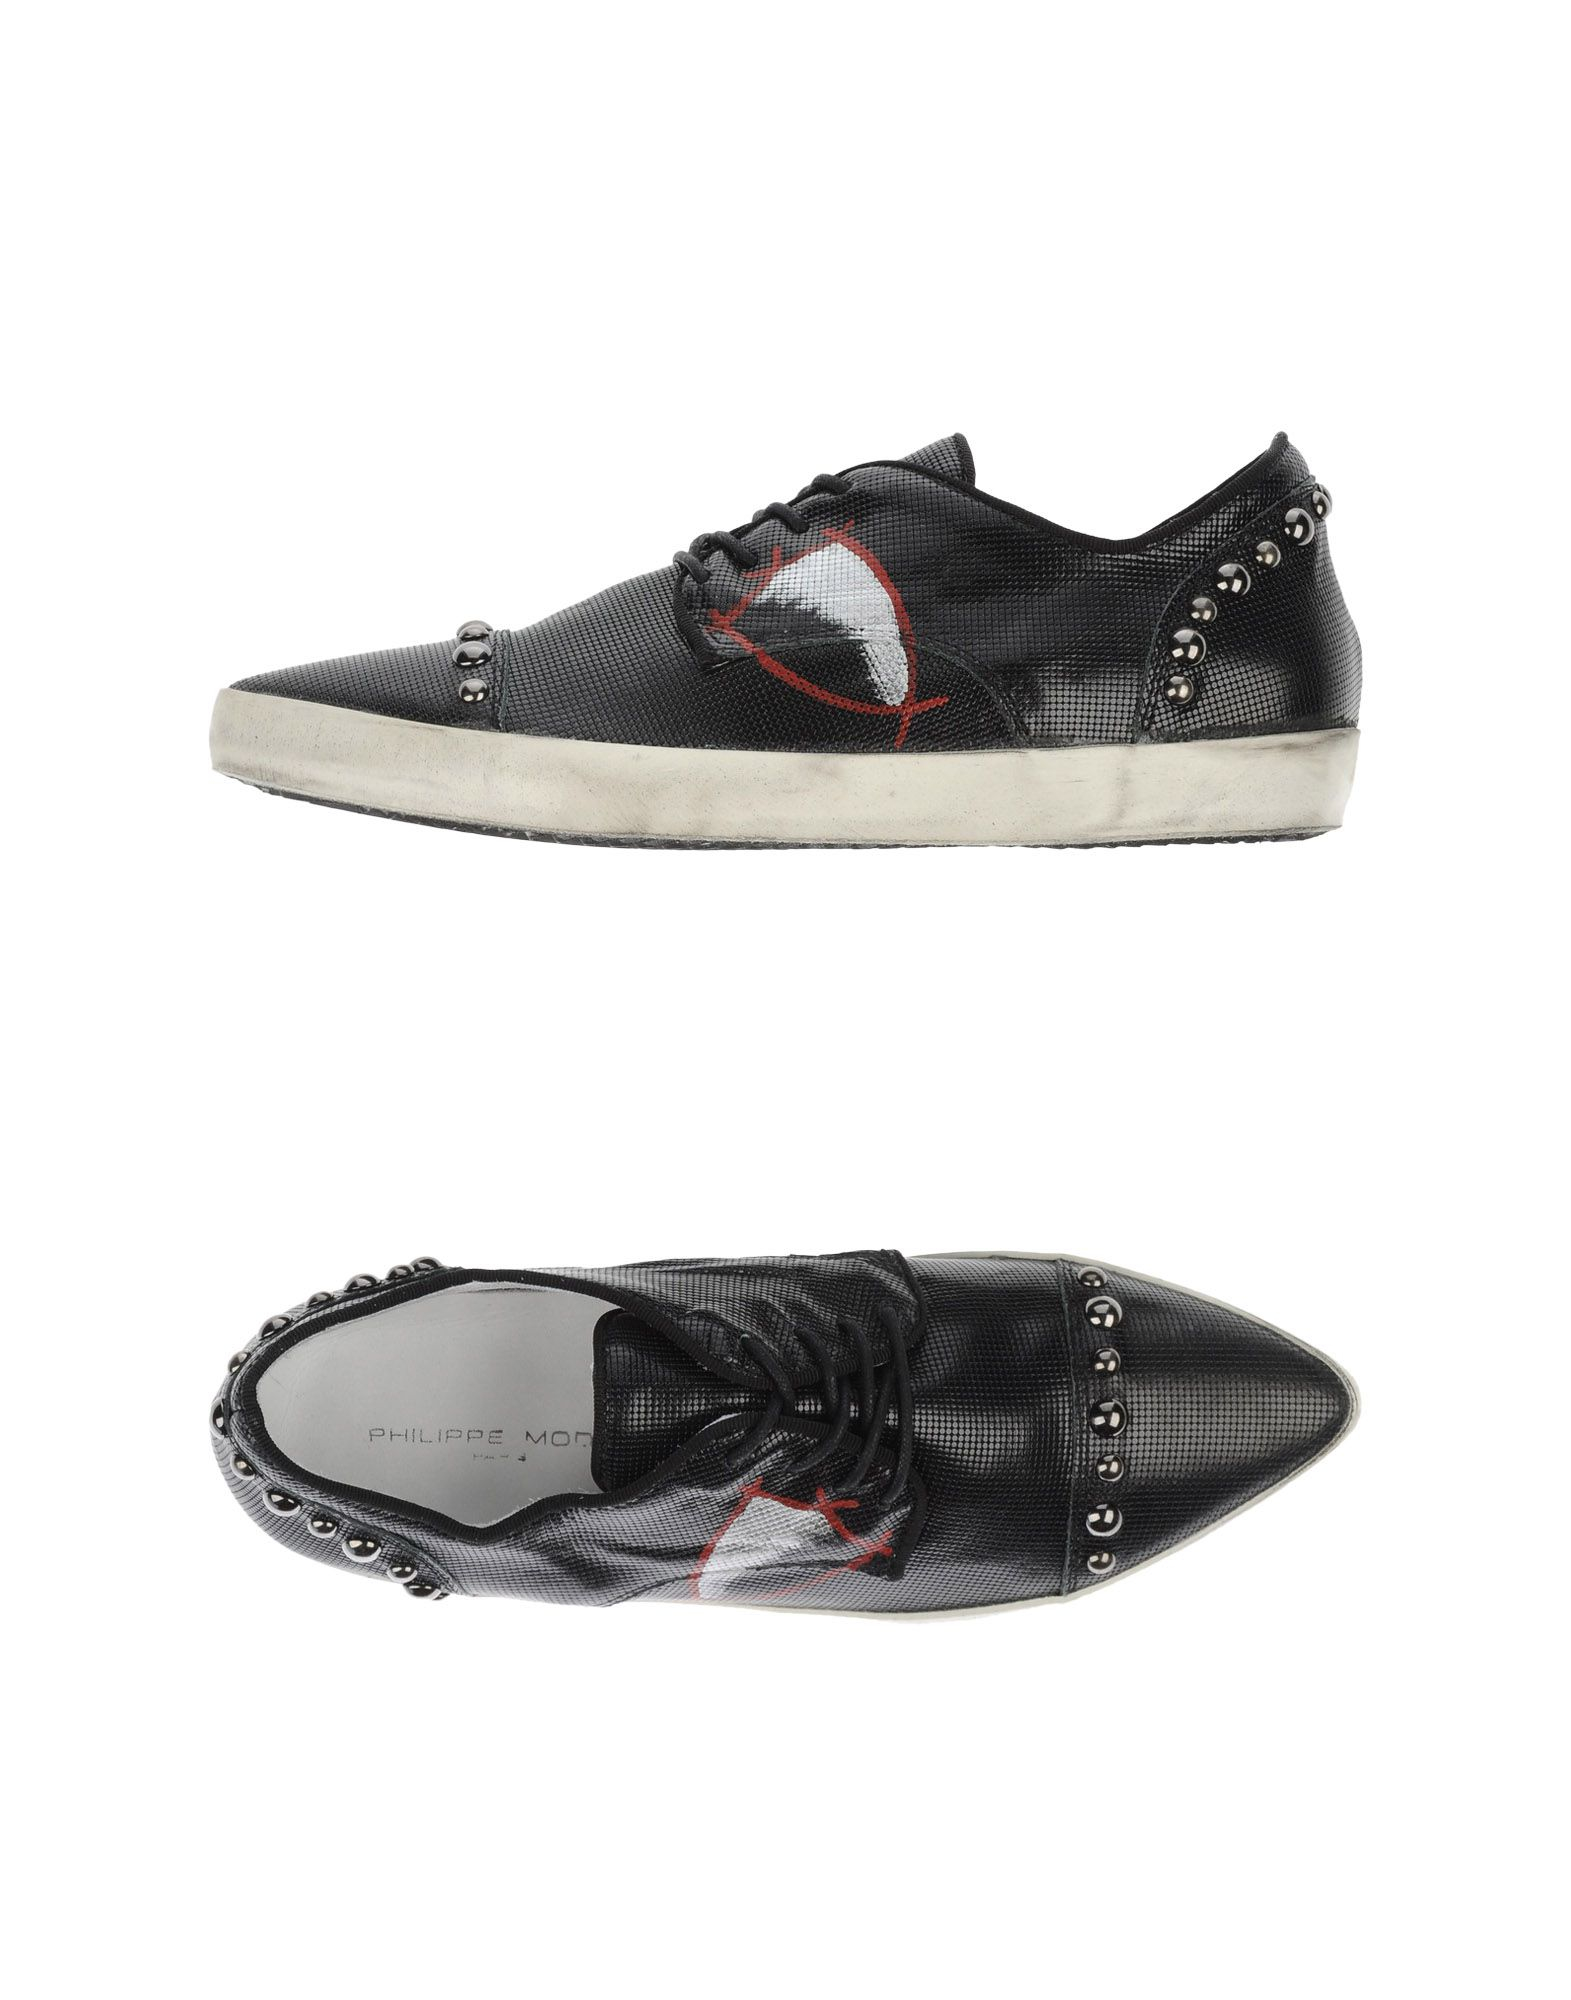 Philippe model High-tops & Trainers in Black | Lyst